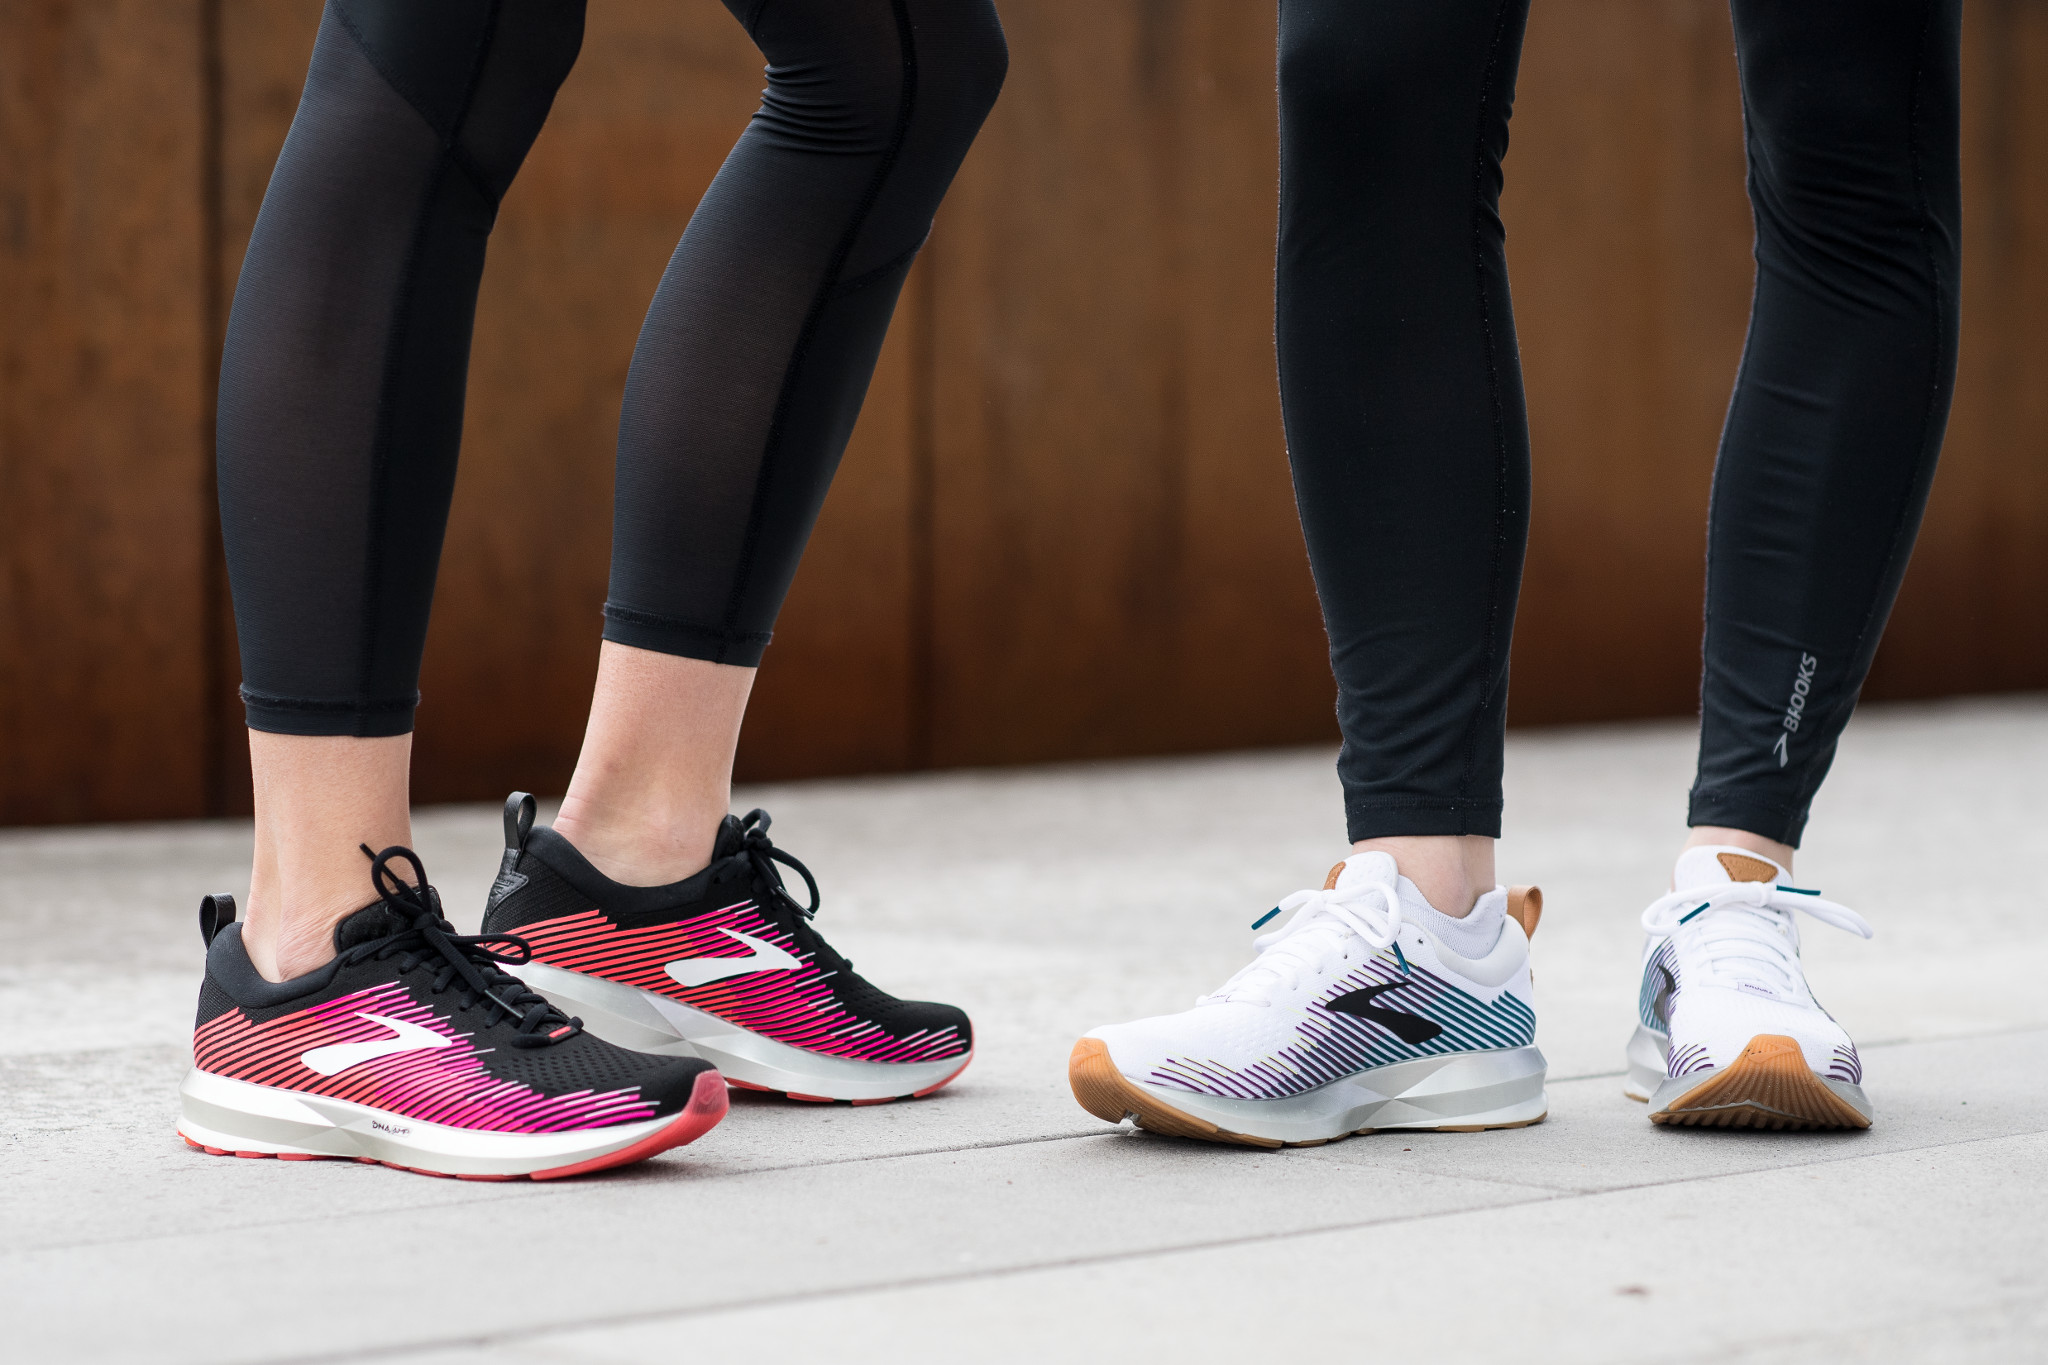 Brooks' Limited Edition Levitate is the